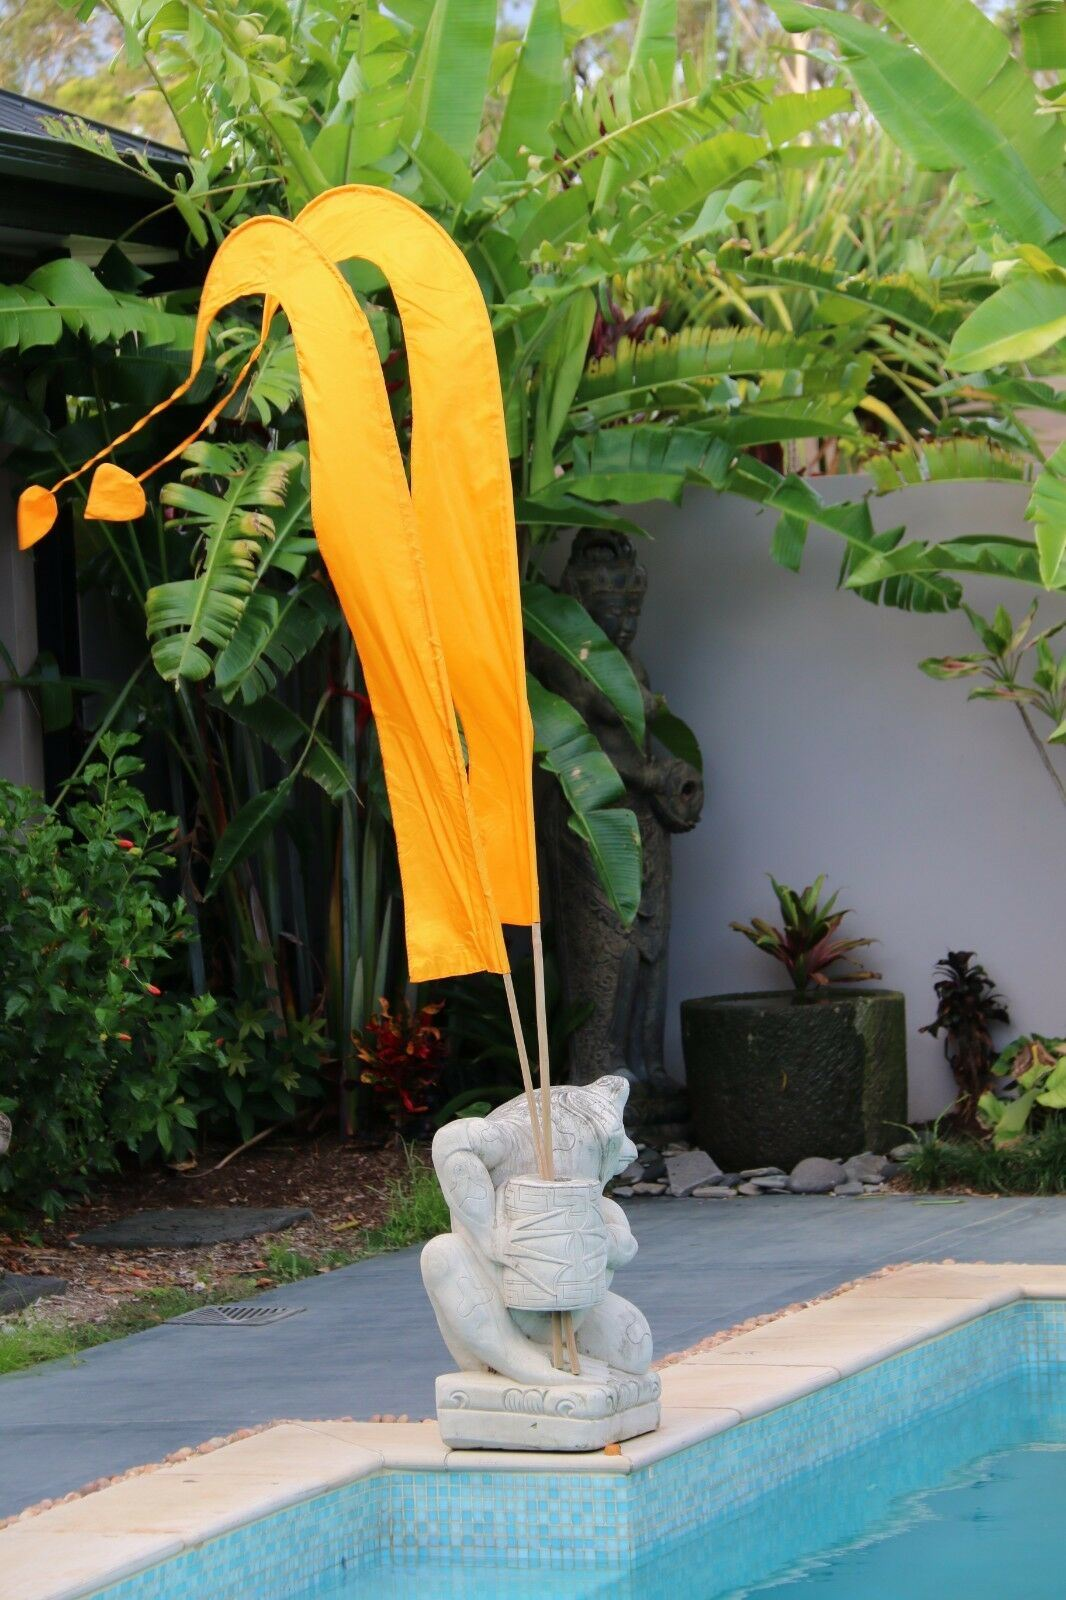 NEW Large 3m Bali Umbul Flags - No Pole - 11 Colours - Wedding Party Flags